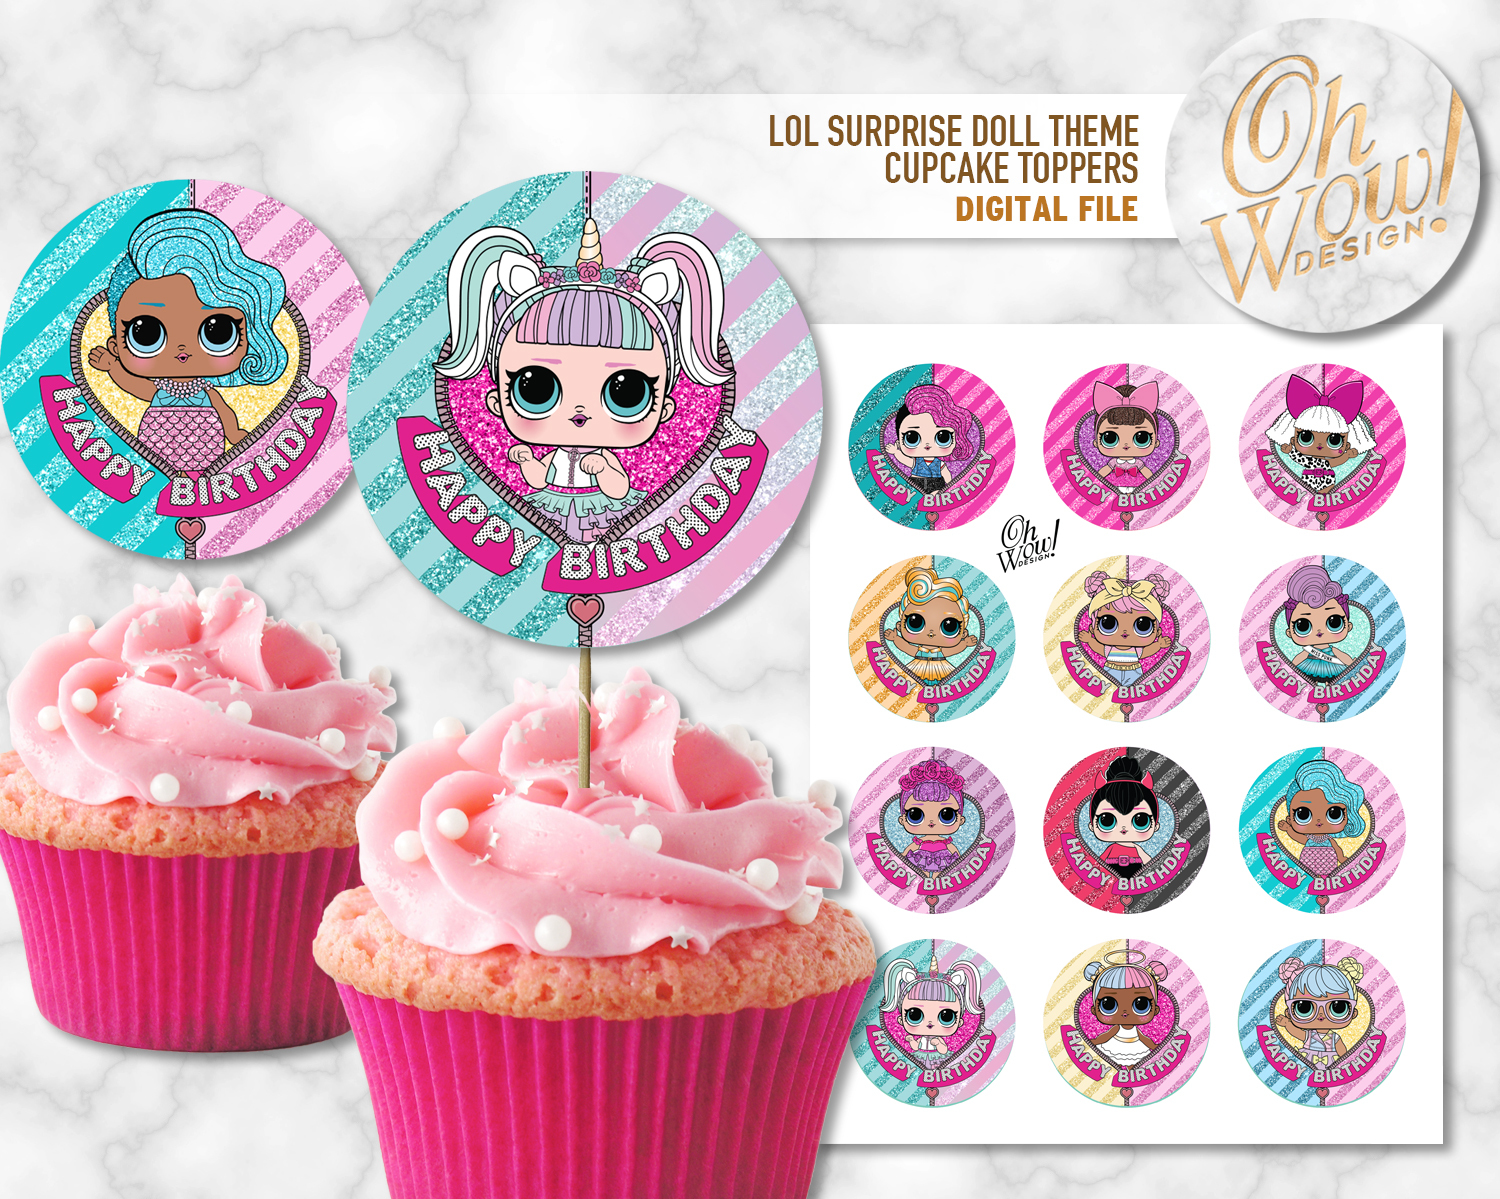 LOL Surprise Theme Cupcake Toppers: Digital by OhWowDesign on Zibbet